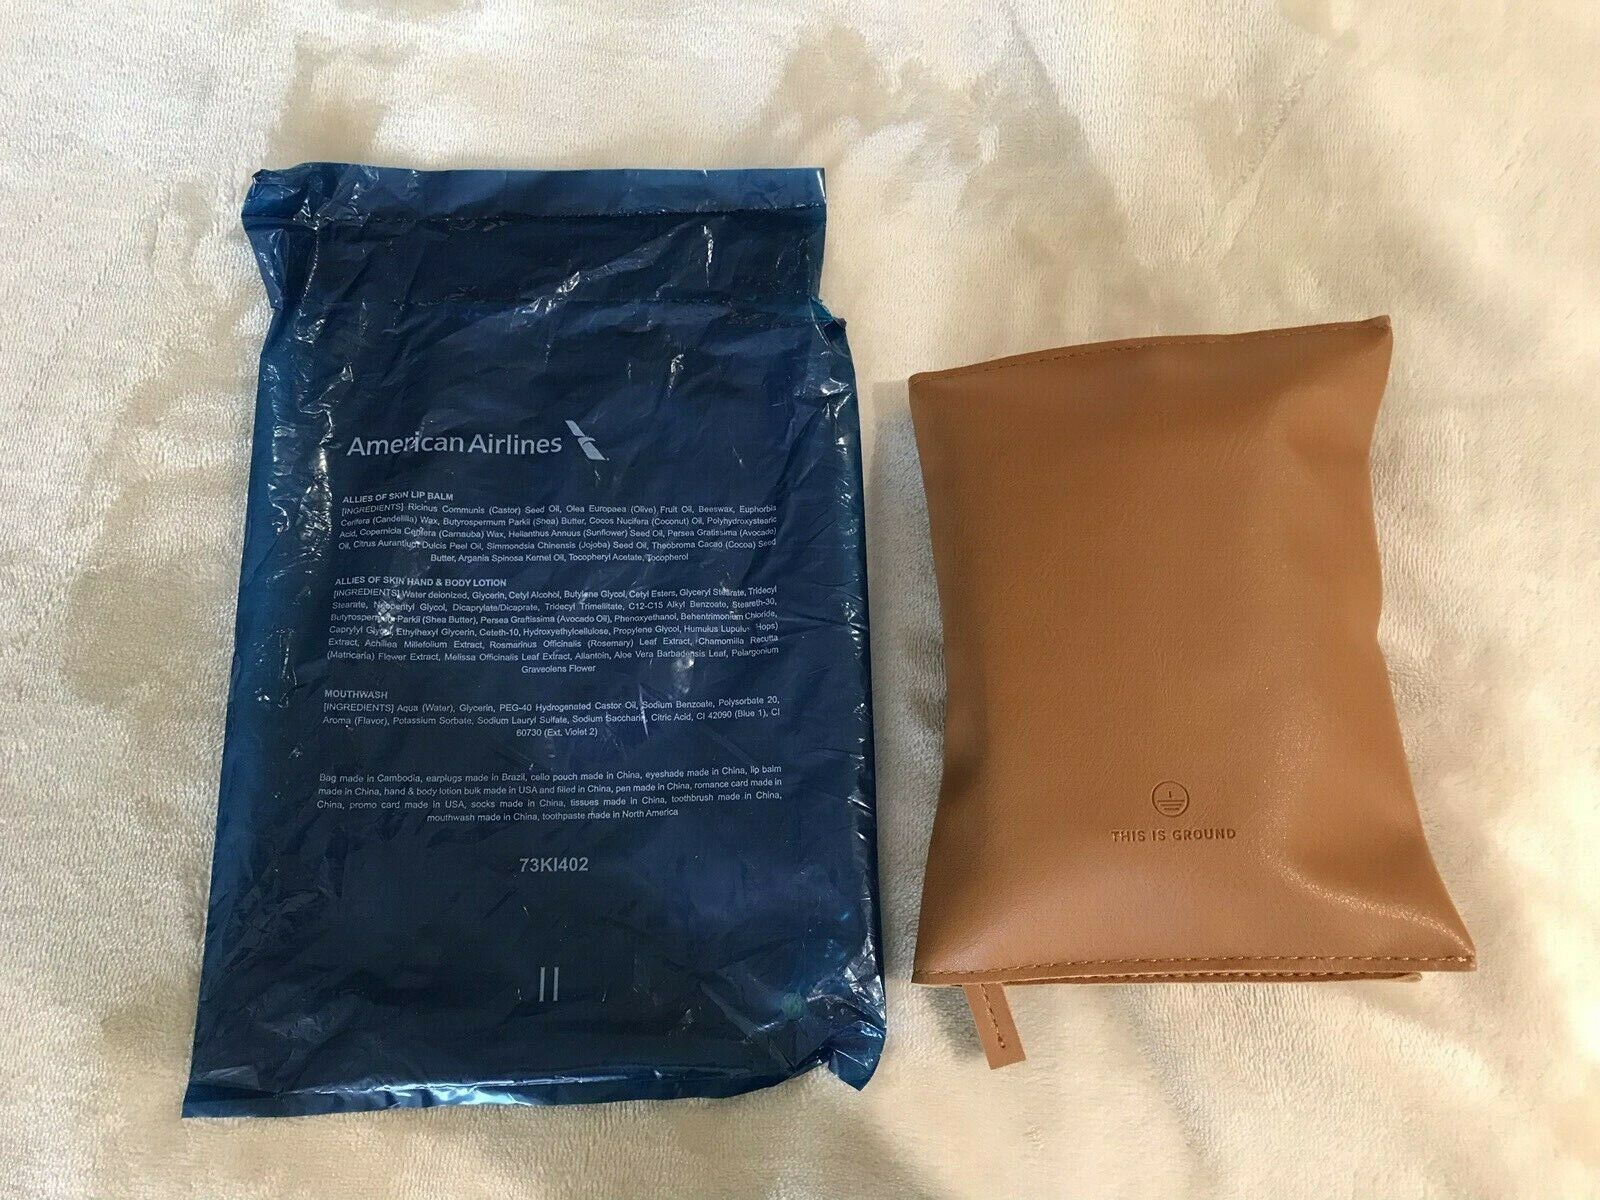 American Airlines AA This Is Ground Internat. Business Class Amenity Kit Sealed  - $11.99